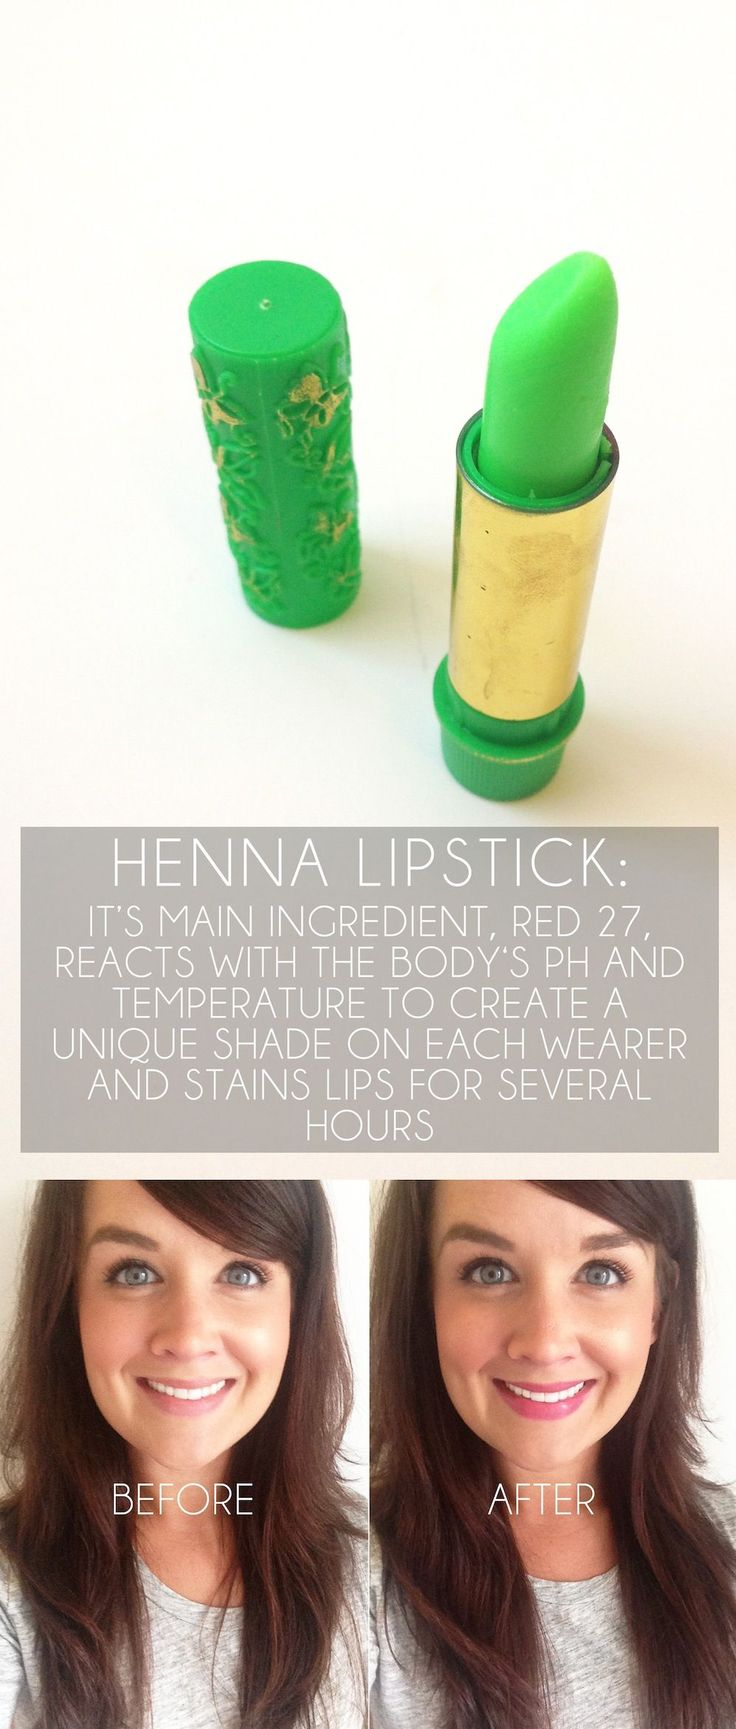 Henna Lipstick: it reacts with the body's natural pH and temperature to create a unique shade on each wearer and stains lips for several hours, $6 | Ebay